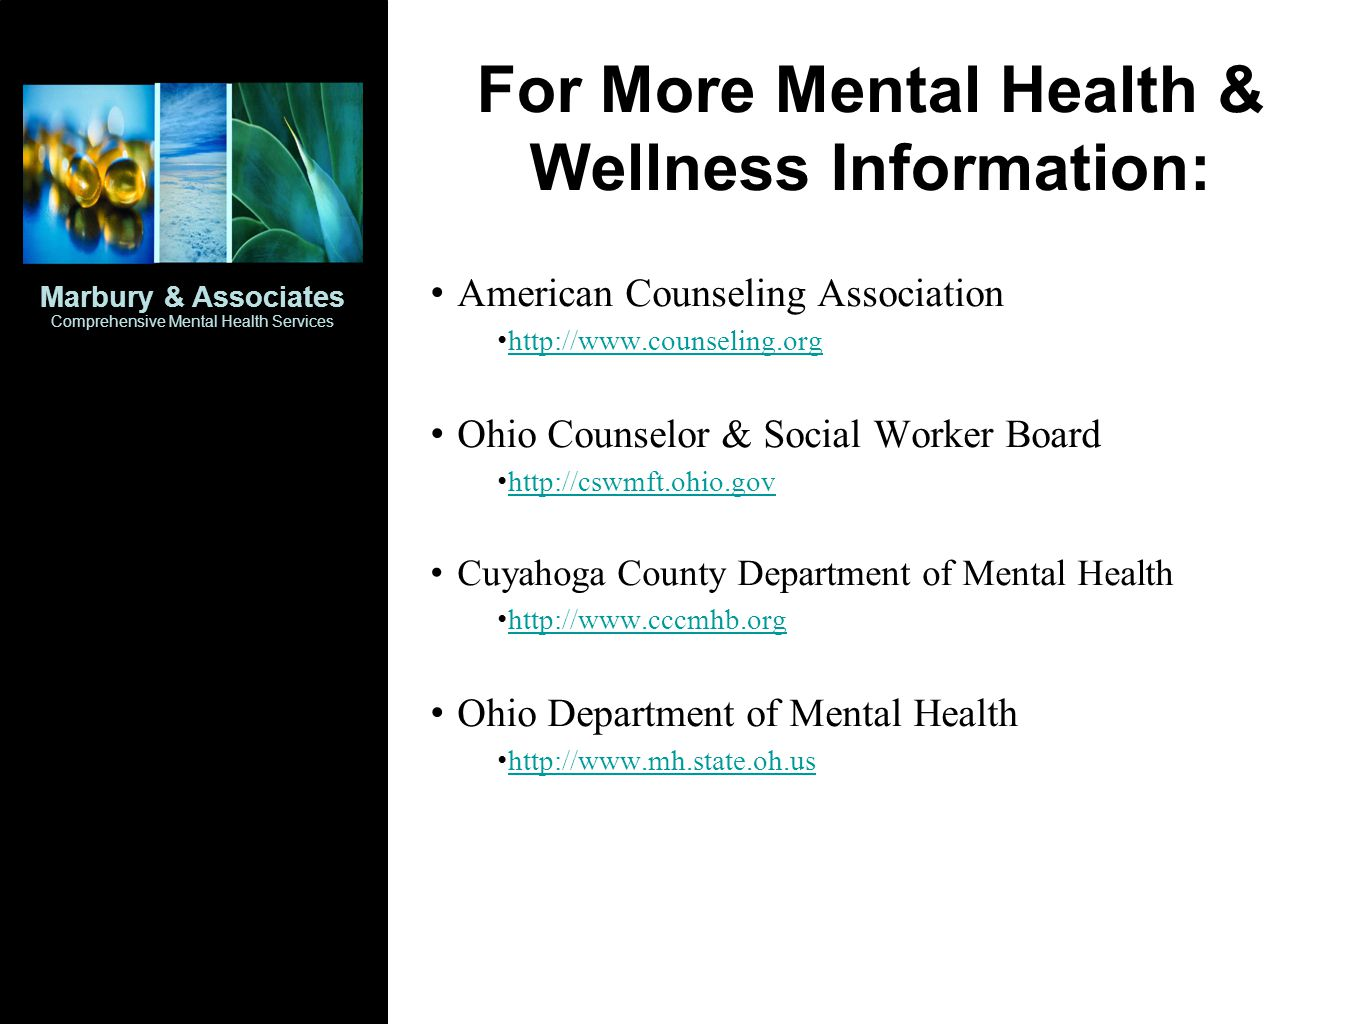 For More Mental Health & Wellness Information: